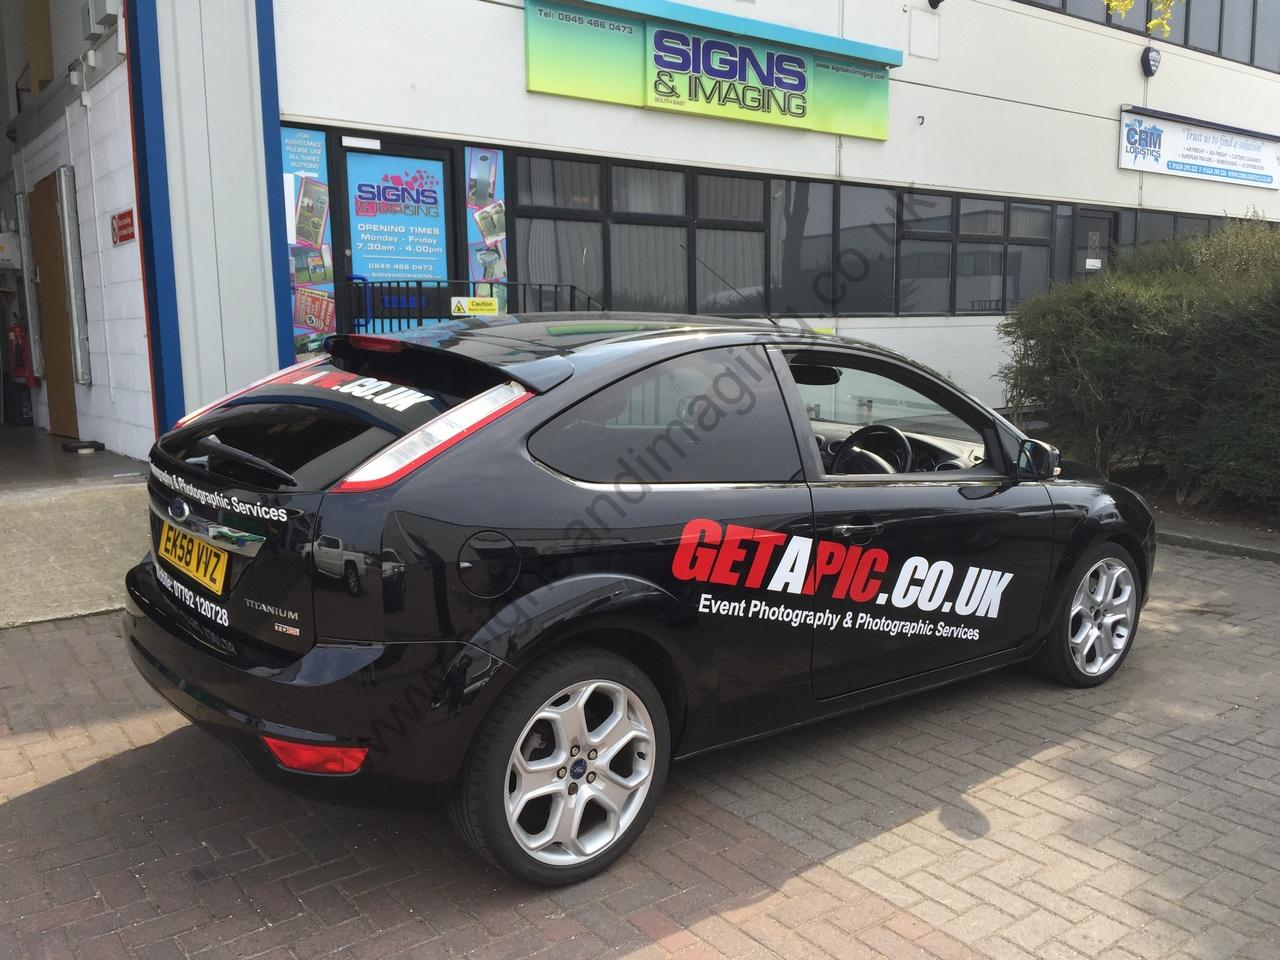 Car Graphics Car Wraps Decals Signs And Imaging Kent